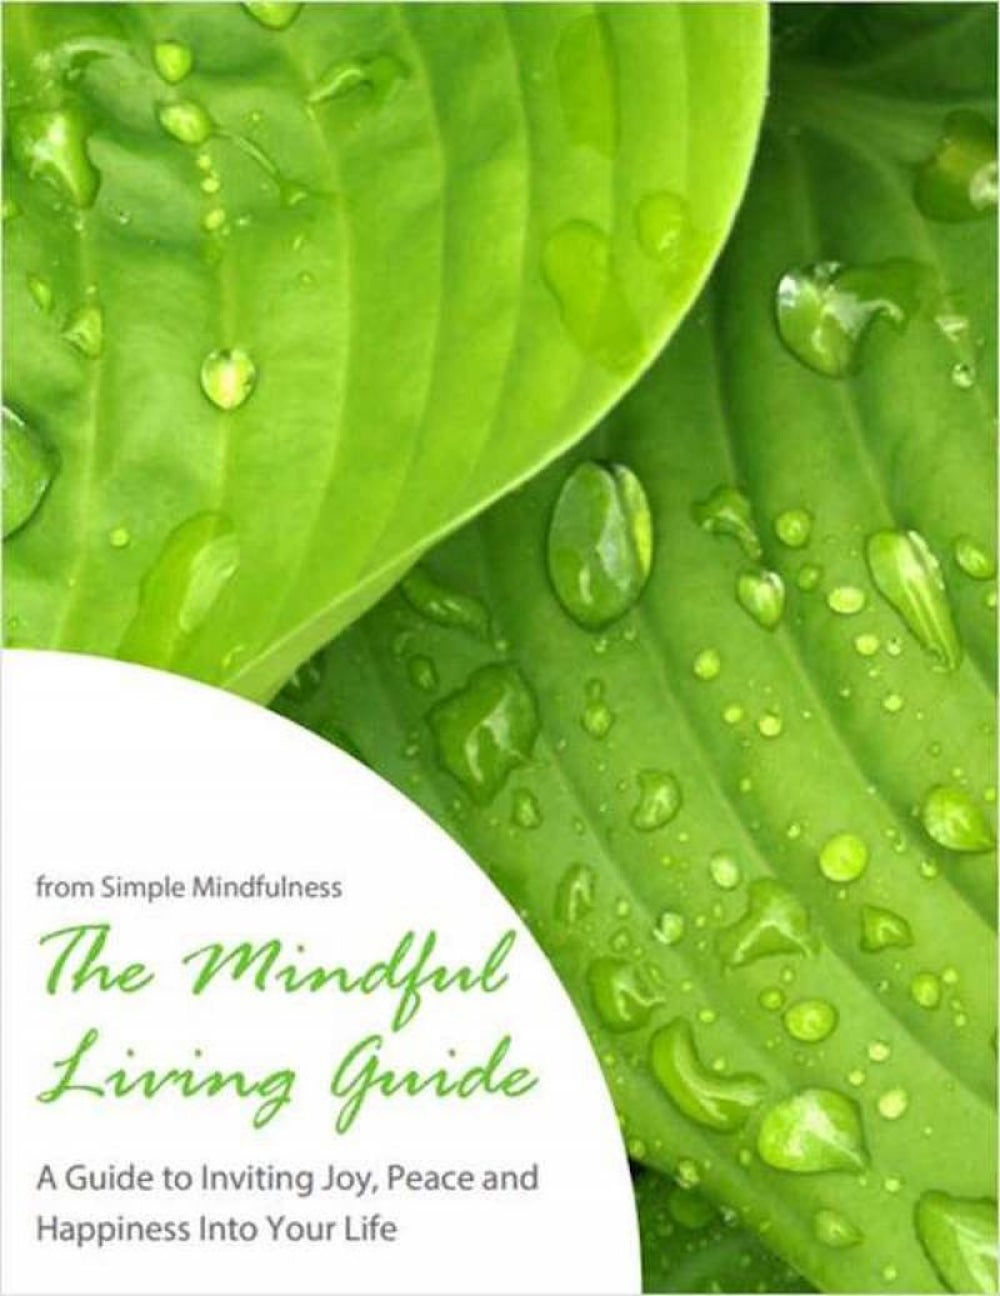 The Mindful Living Guide